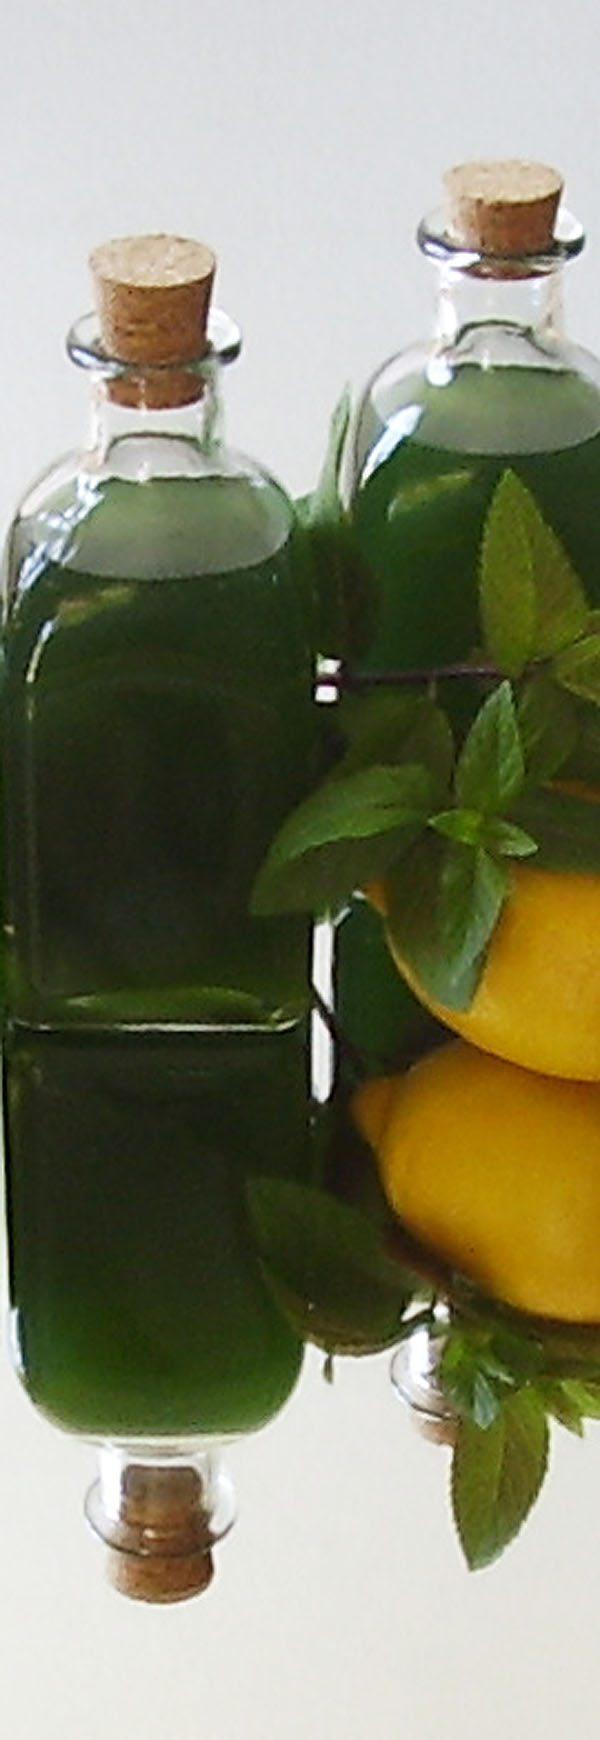 Mint Syrup Quick Version Recipe: There is no substitute for its wonderful flavor and aroma; fortunately, it's easy to make your own!